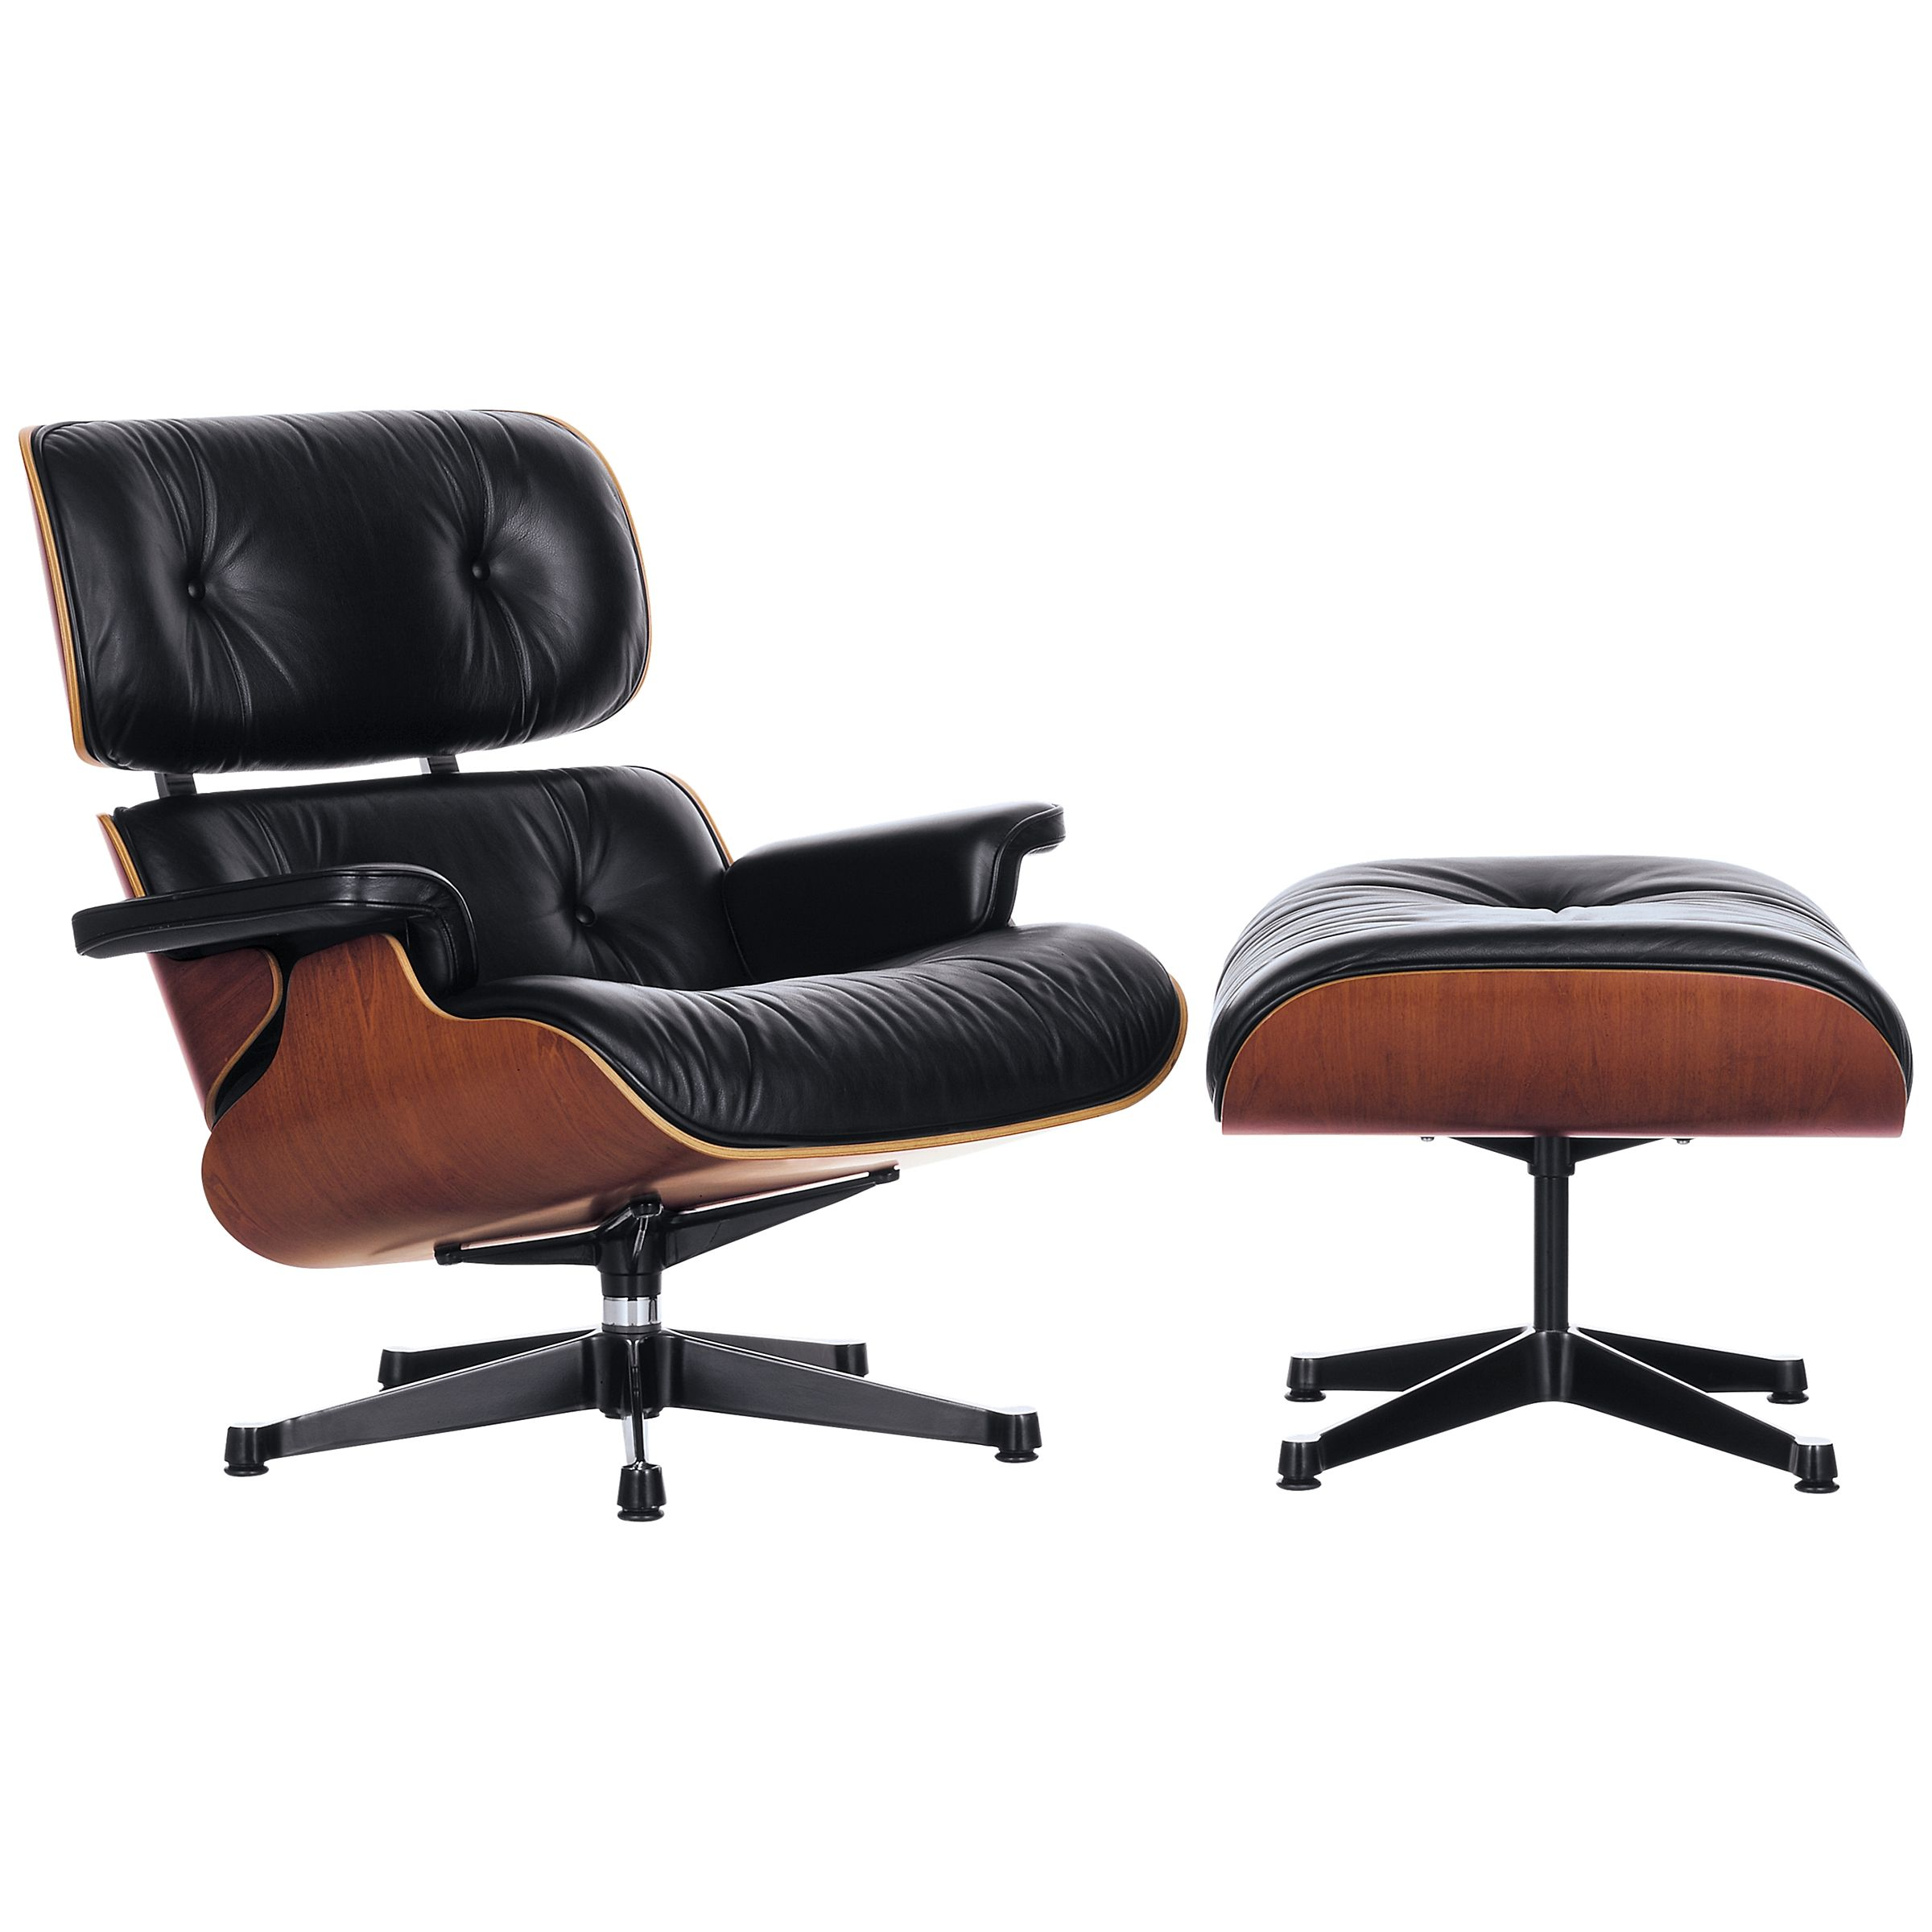 Vitra Vitra Eames Classic Leather Lounge Chair and Ottoman, Black/Palisander